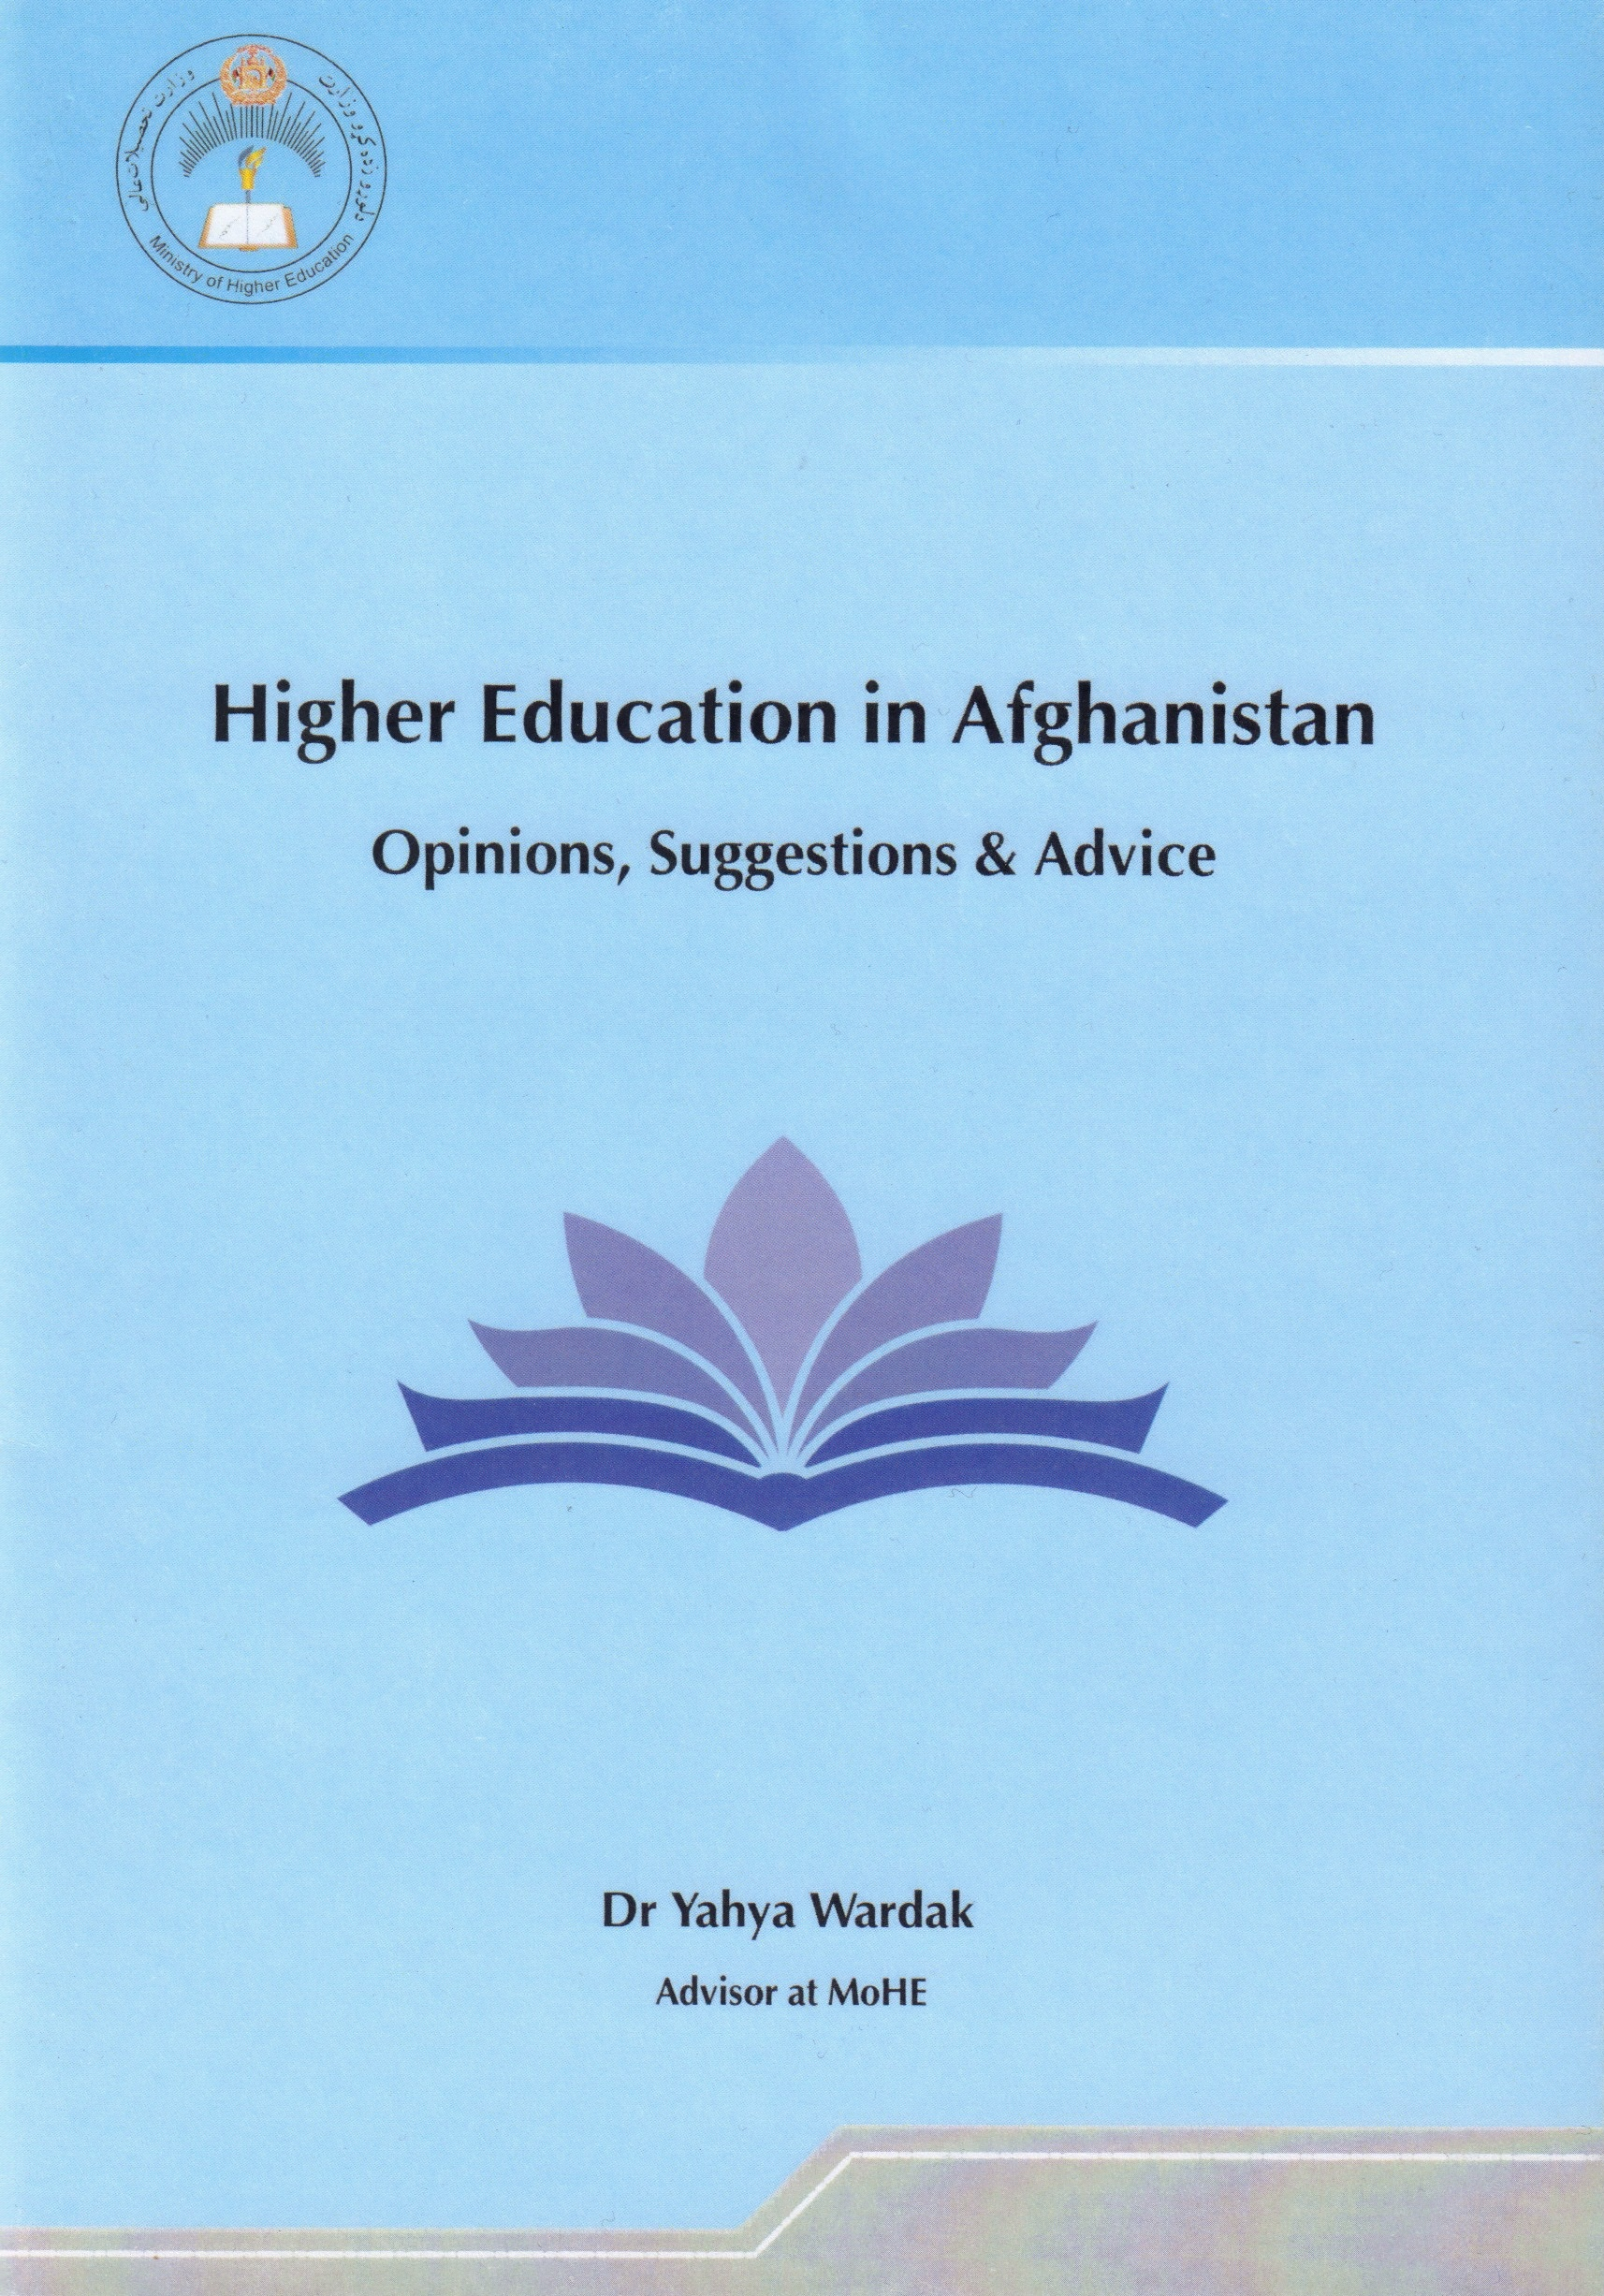 higher education in afghanistan wardak cover